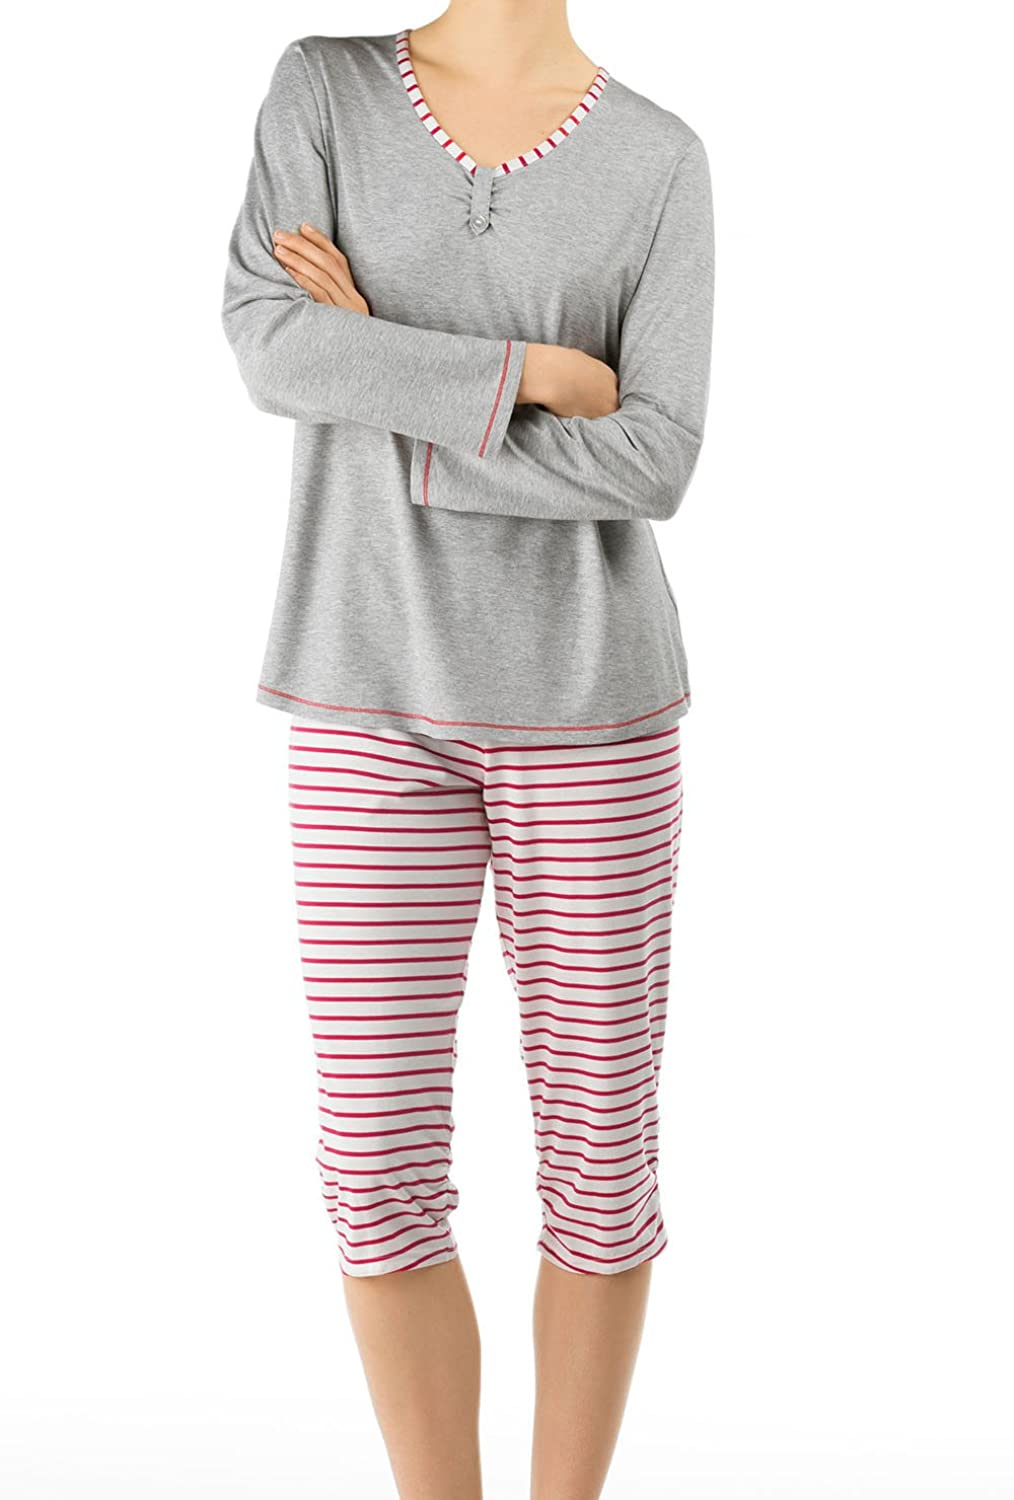 Calida Women's Pyjama Set Grey grey